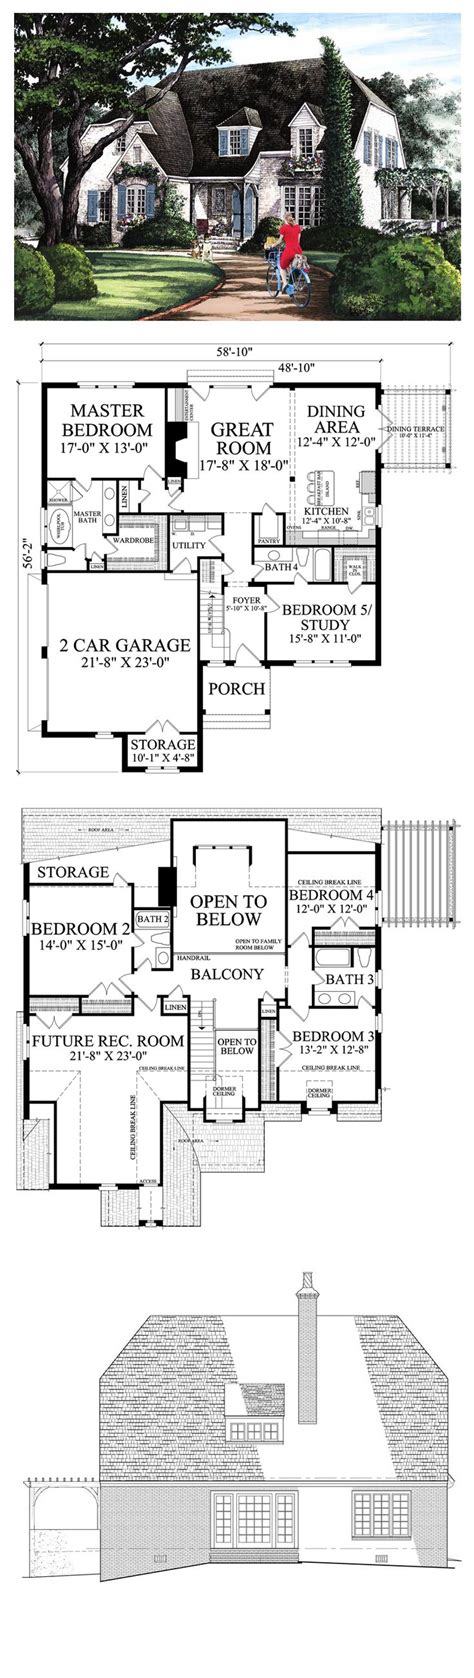 new orleans style floor plans new orleans style home plans best house ideas on pinterest